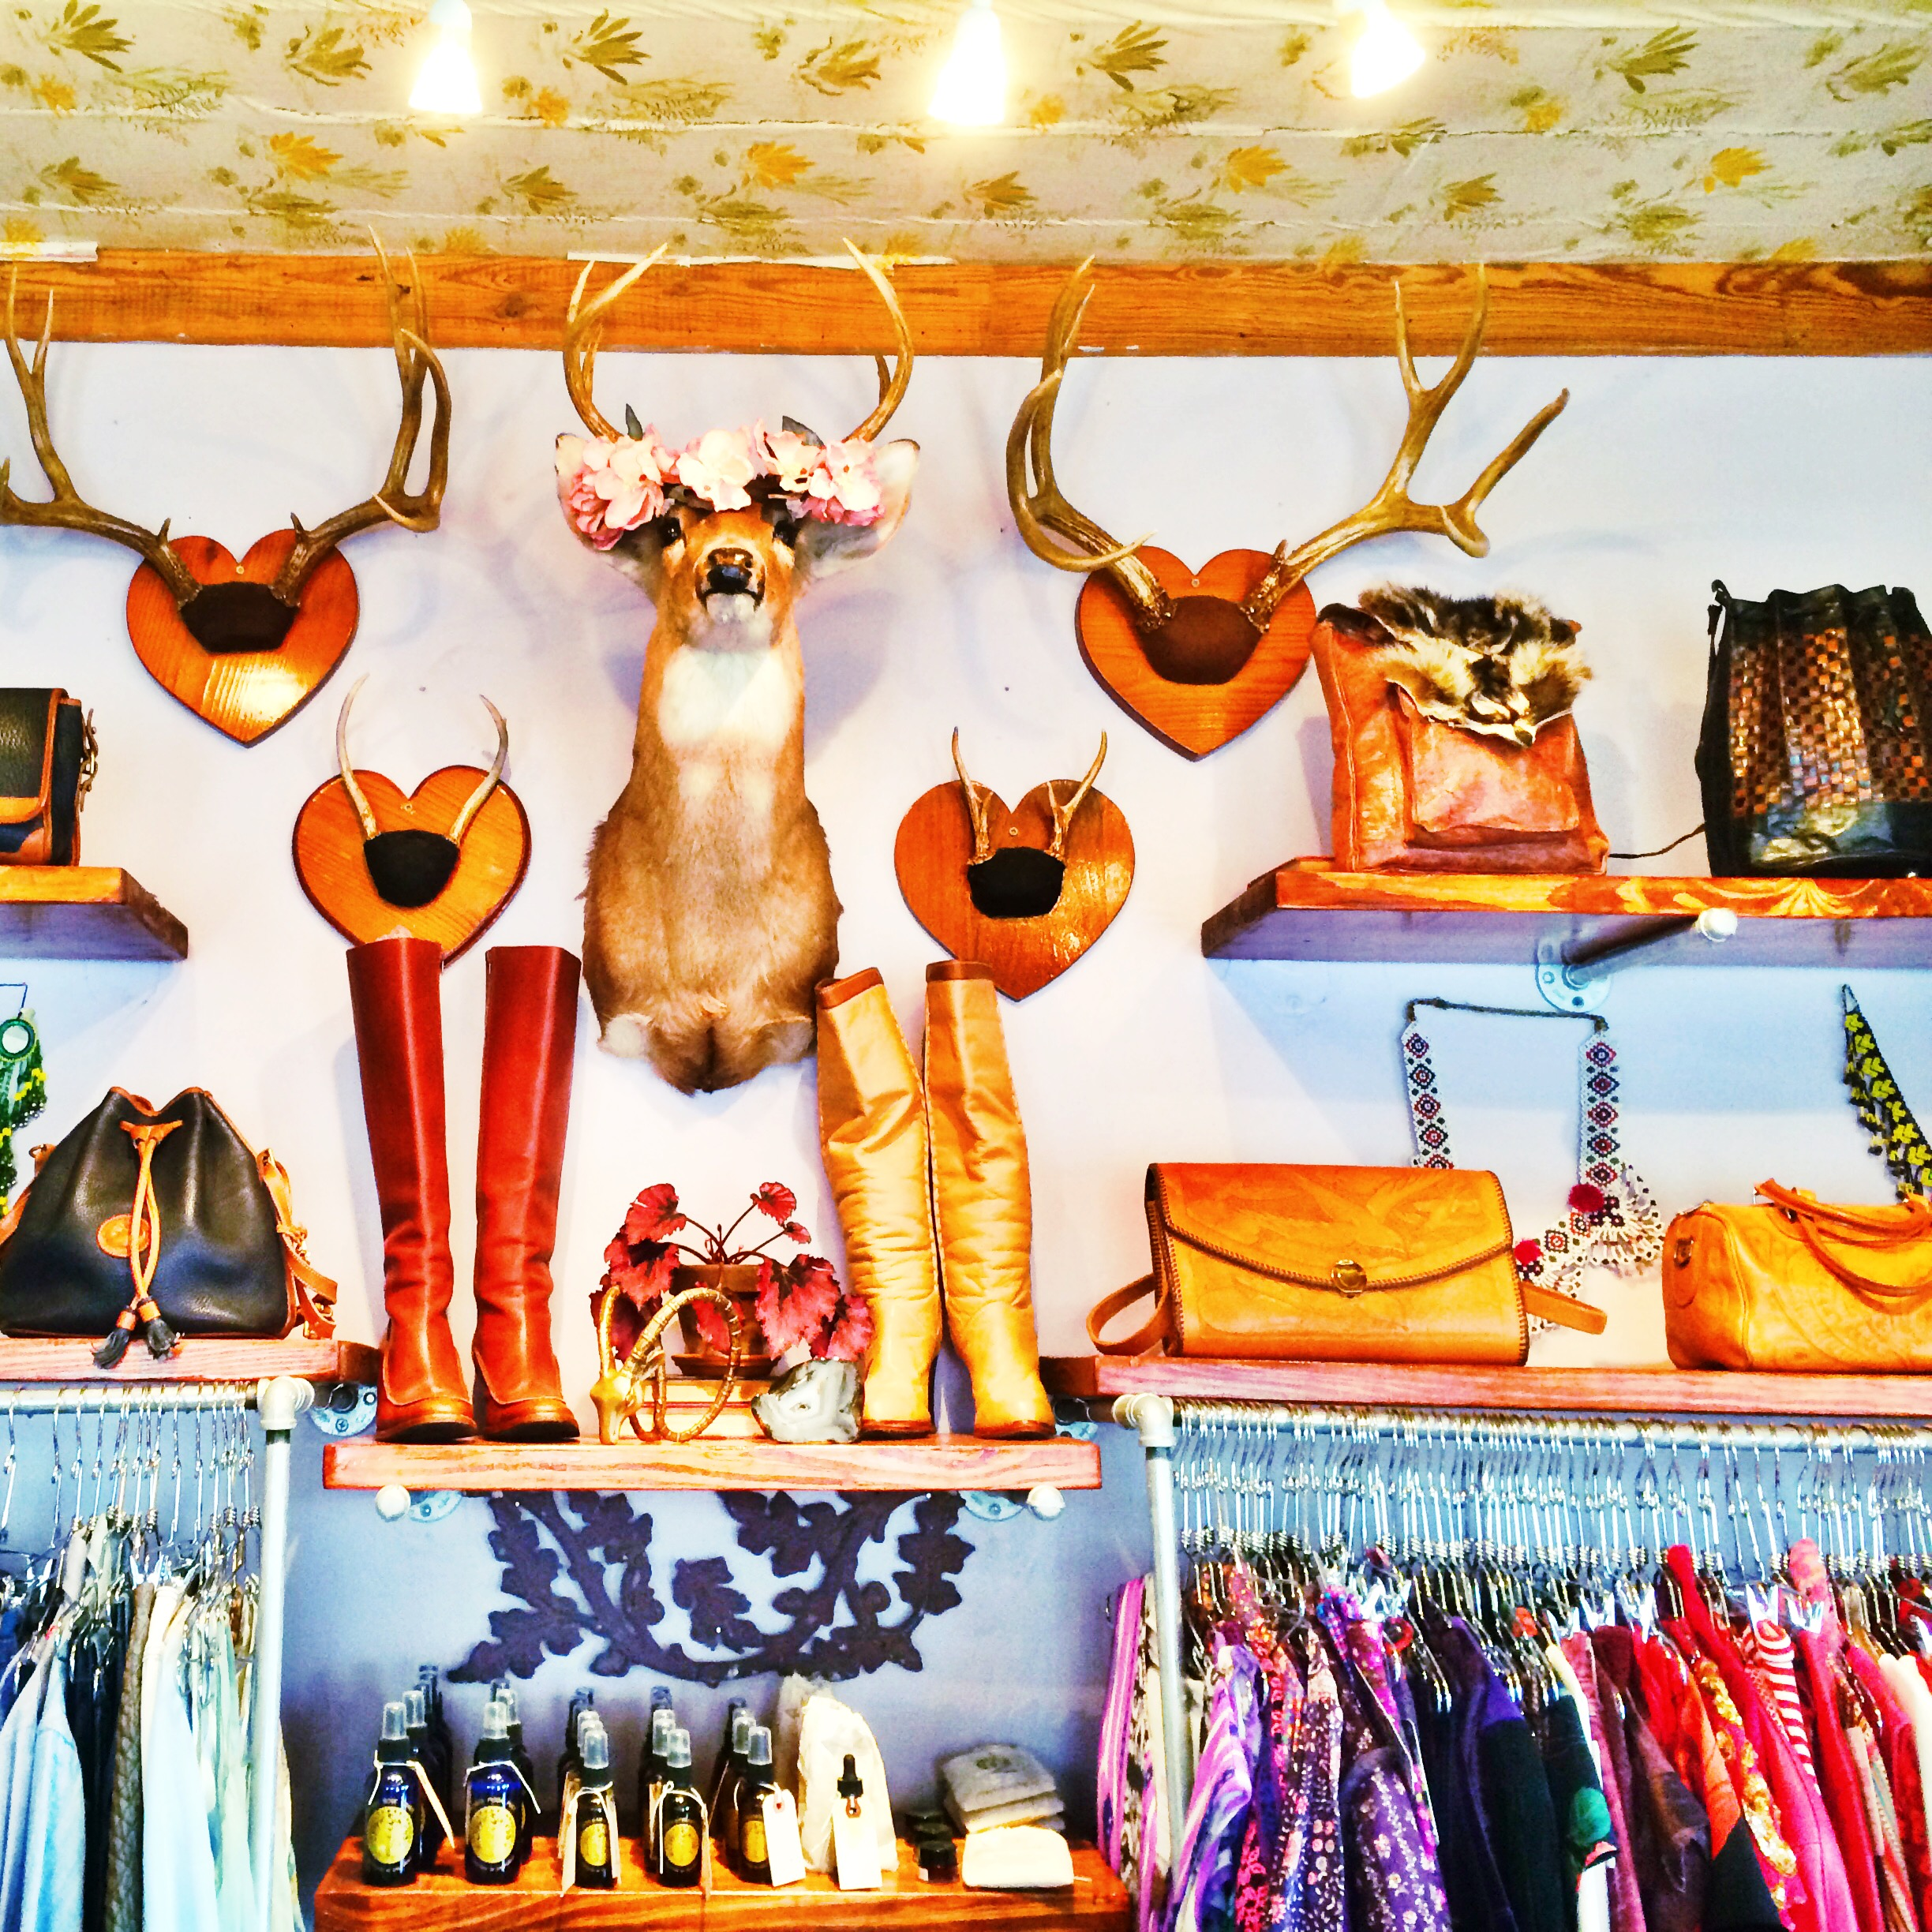 Raquel Greer Gordian discusses how Charm School Vintage is a store that offers a selection of pieces that complement a fashion-forward style.